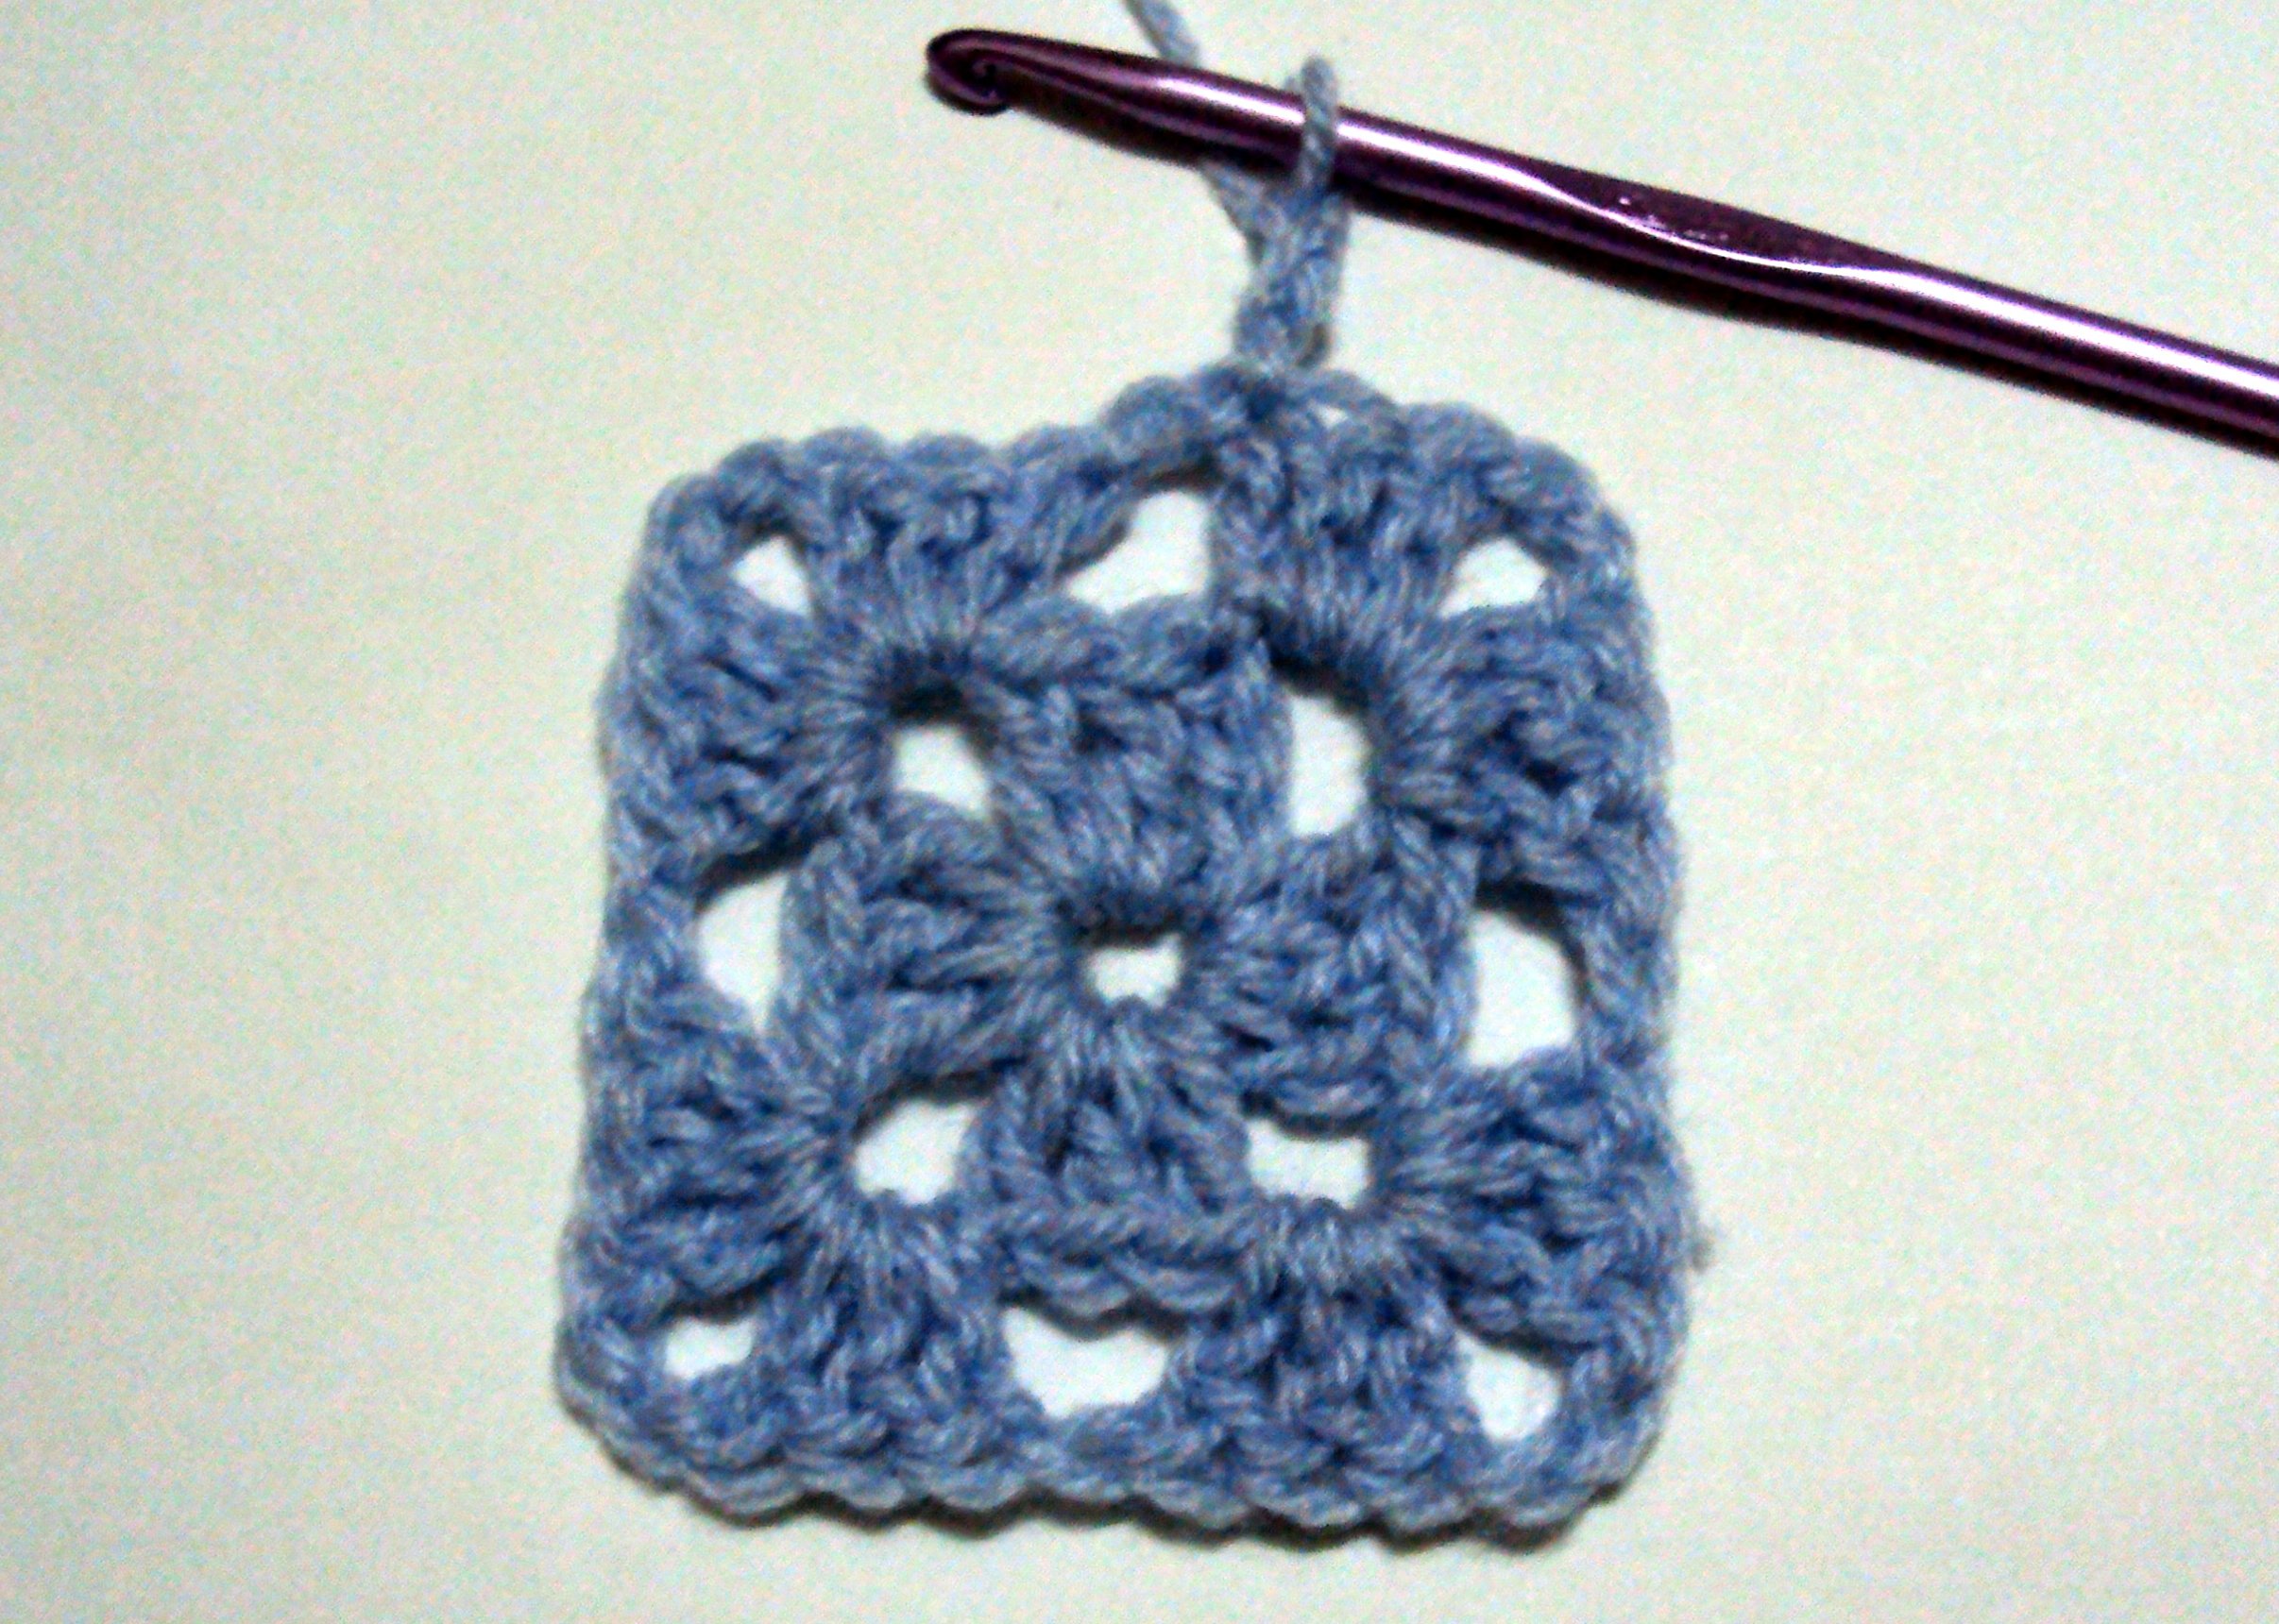 Gallery For > Crochet Patterns For Beginners Step By Step